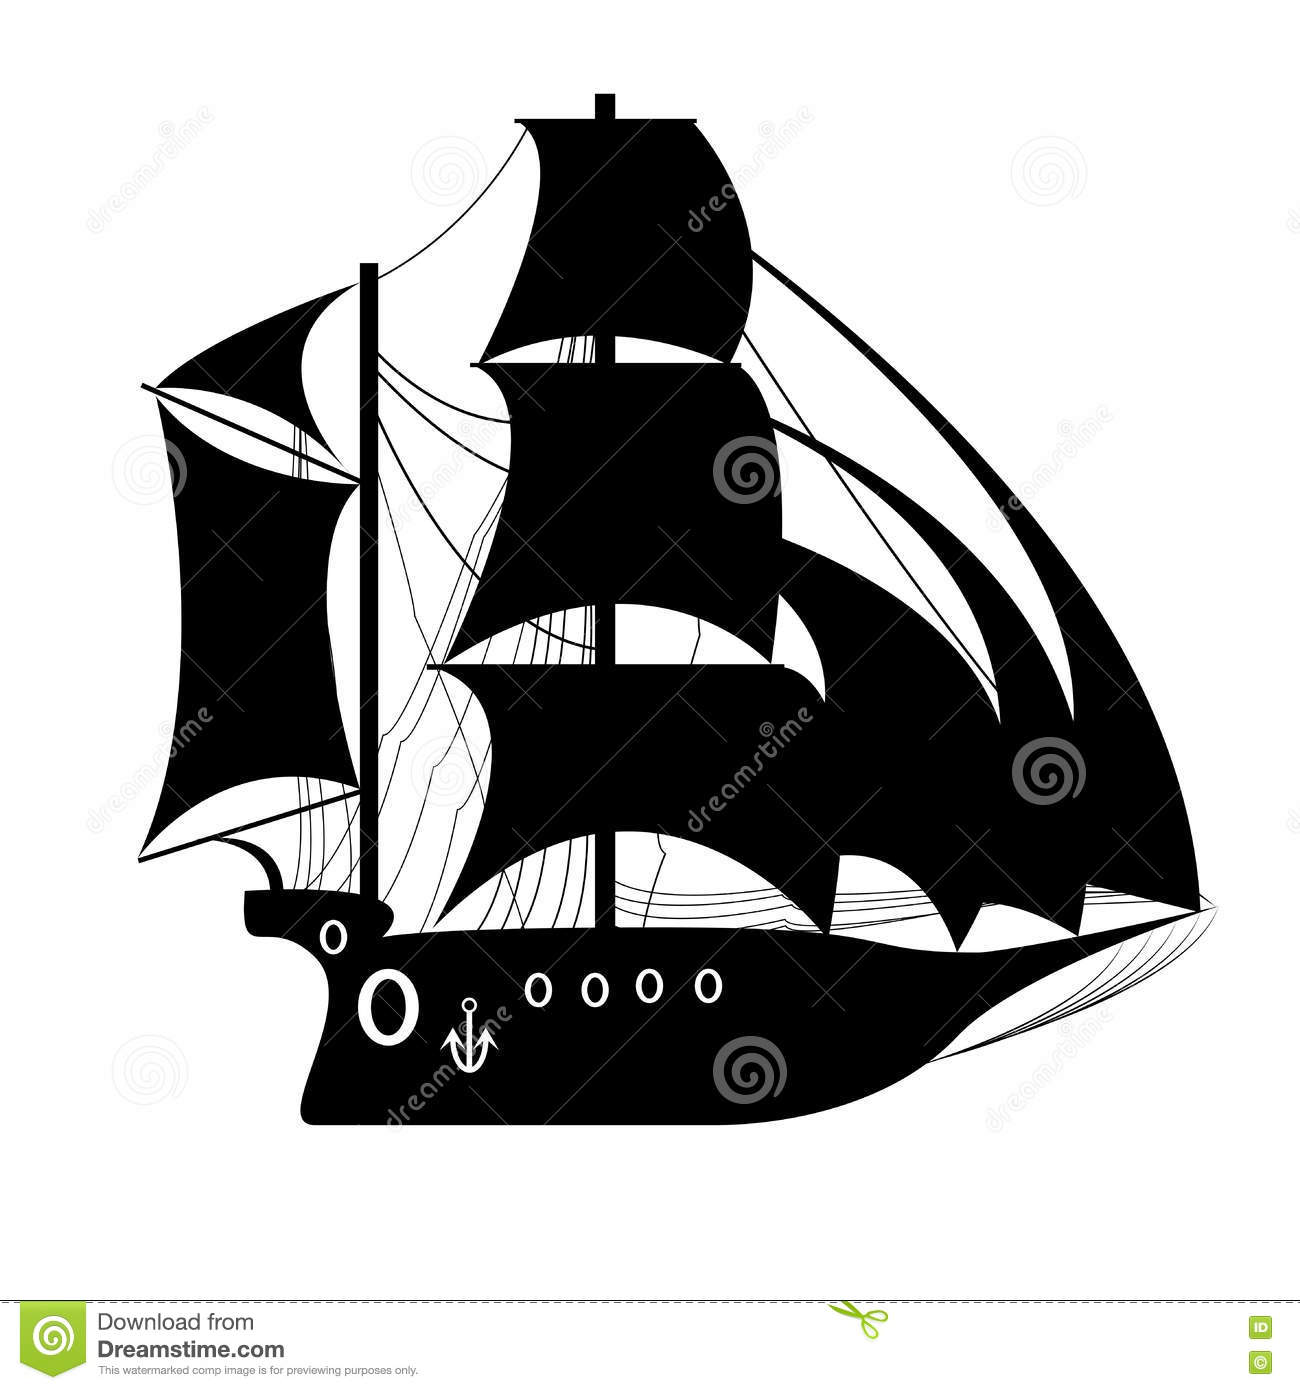 Pirate ship sailing ship under the black flag stock for Pirate ship sails template